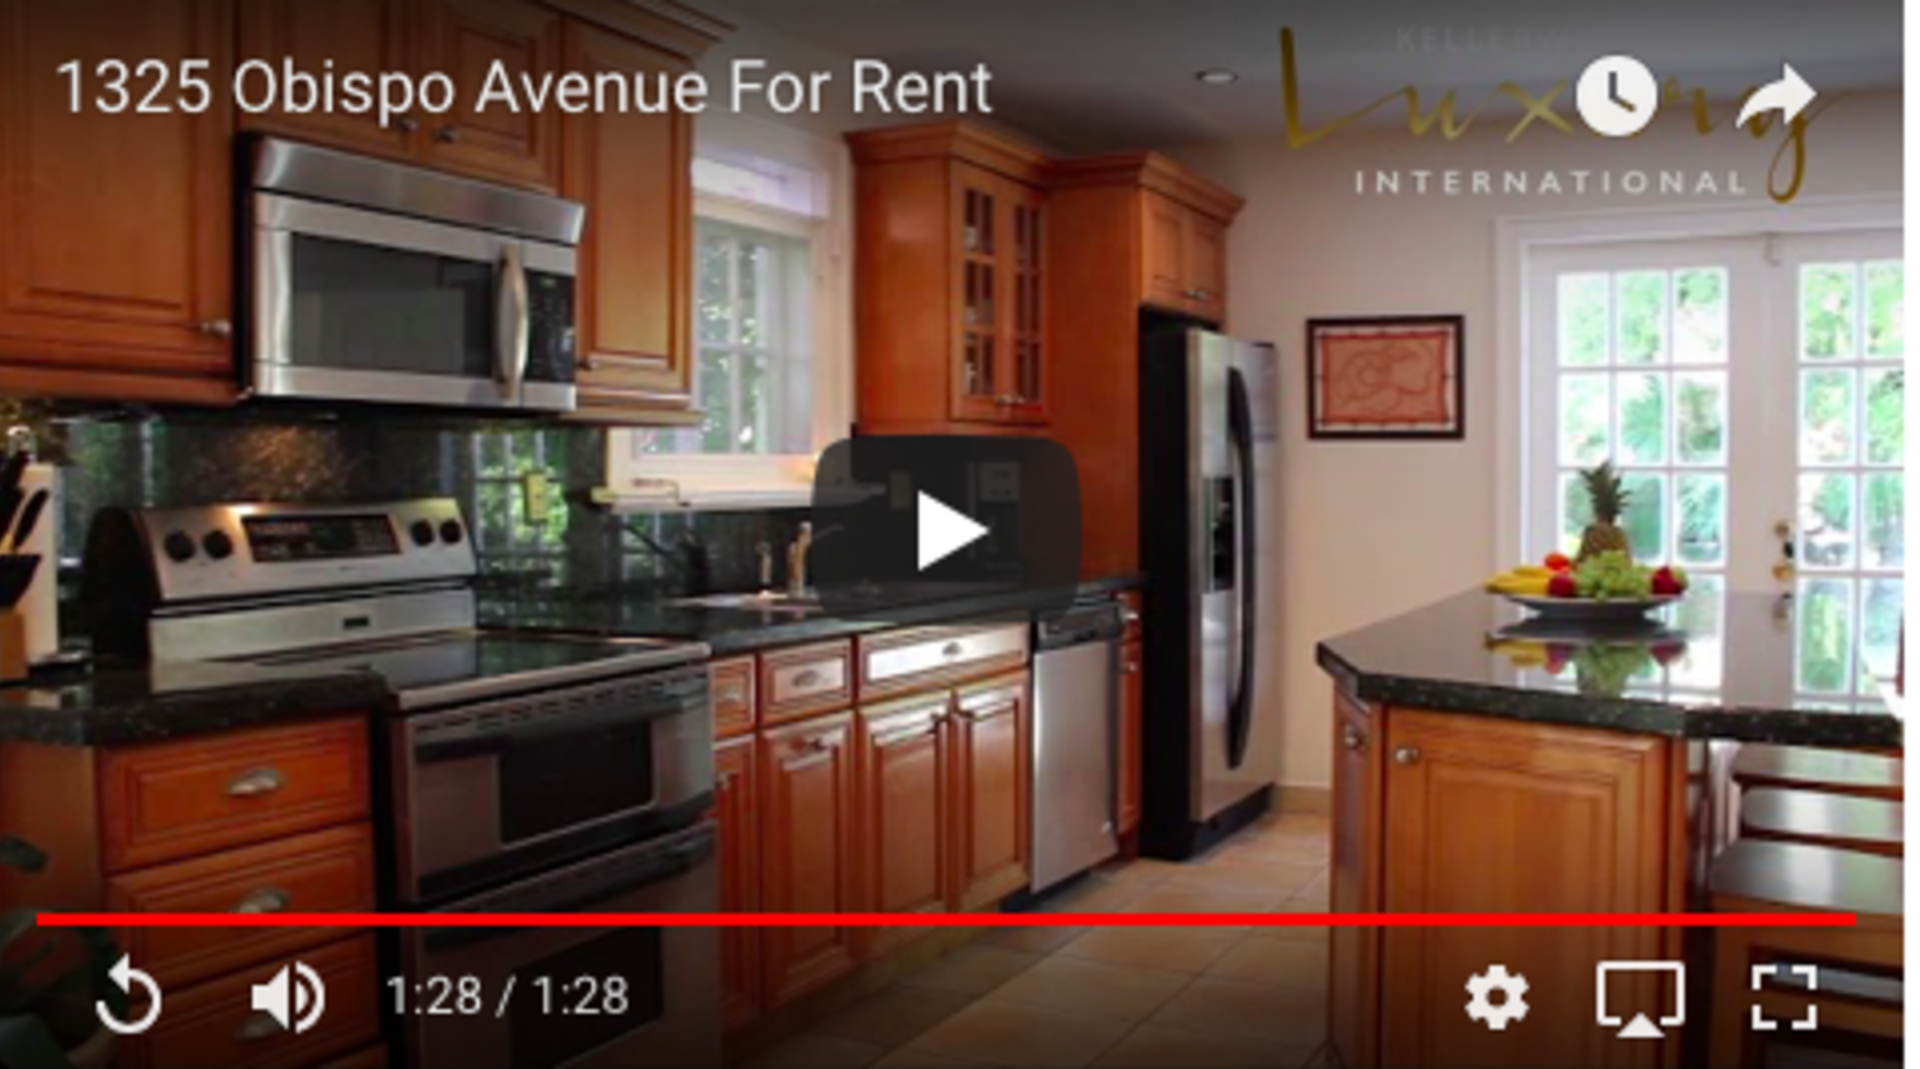 Beautiful House for Rent on 1325 Obispo Avenue, Coral Gables, Miami